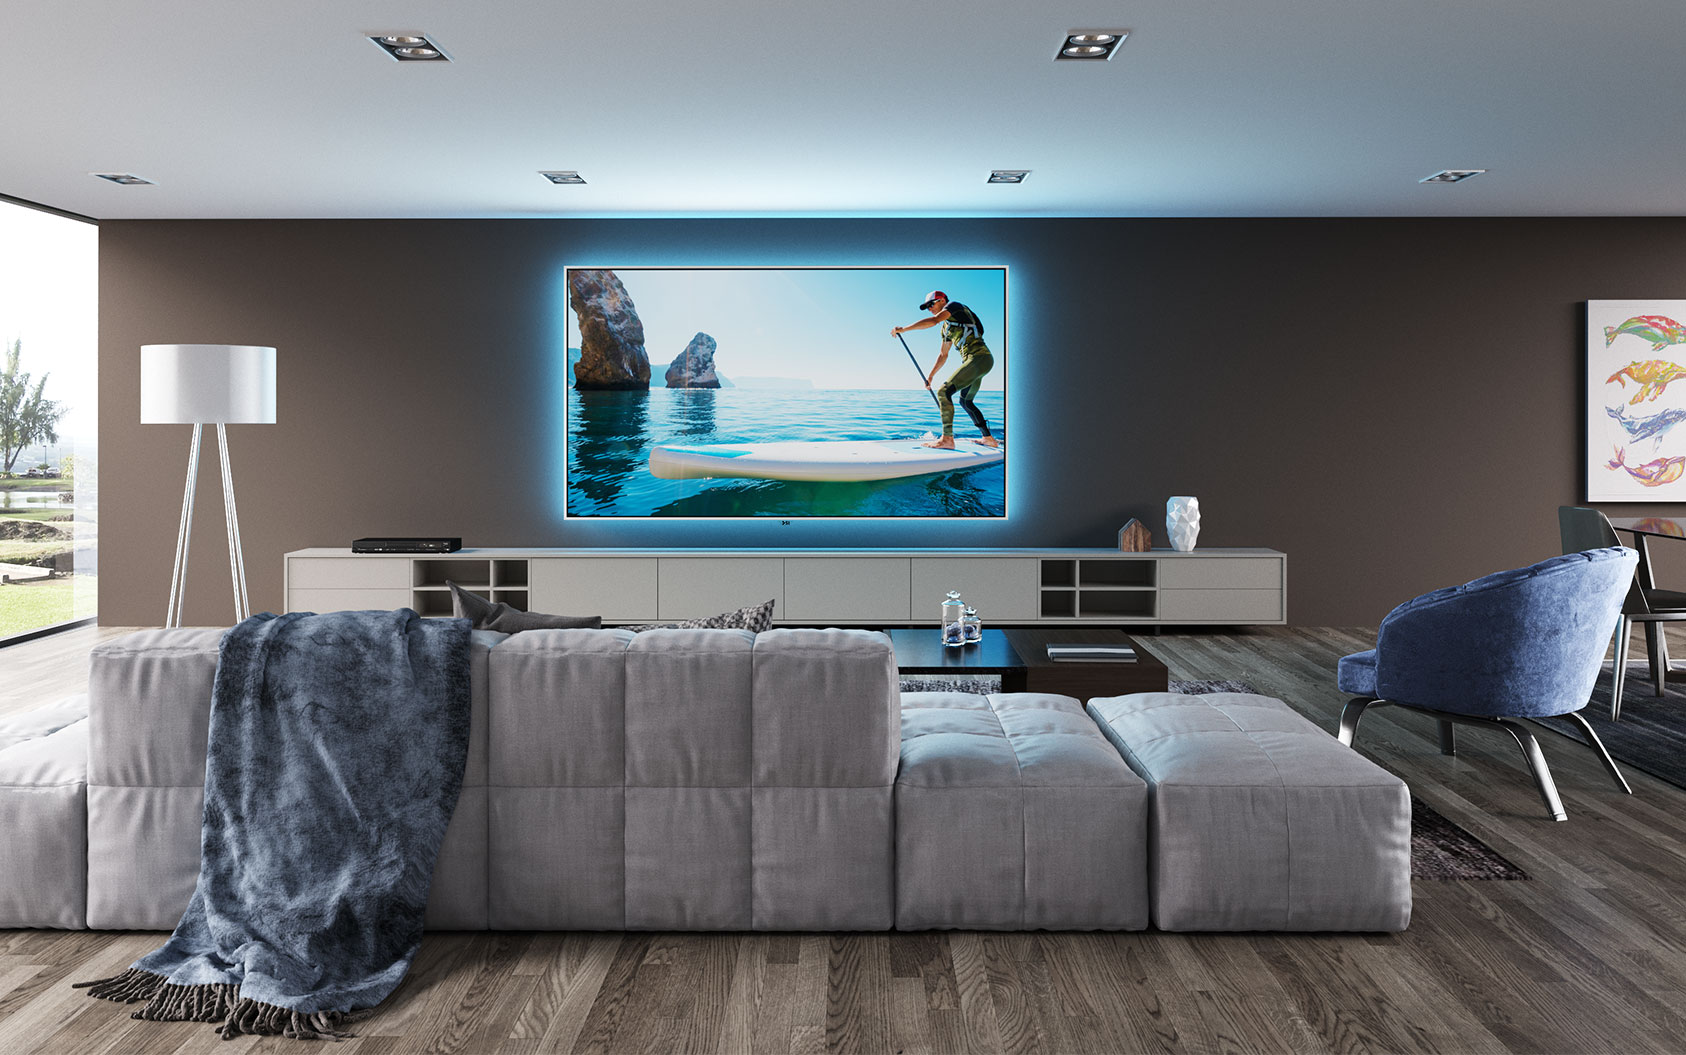 Projection Screens - What you need to know to make sure your projector is looking crystal clear!